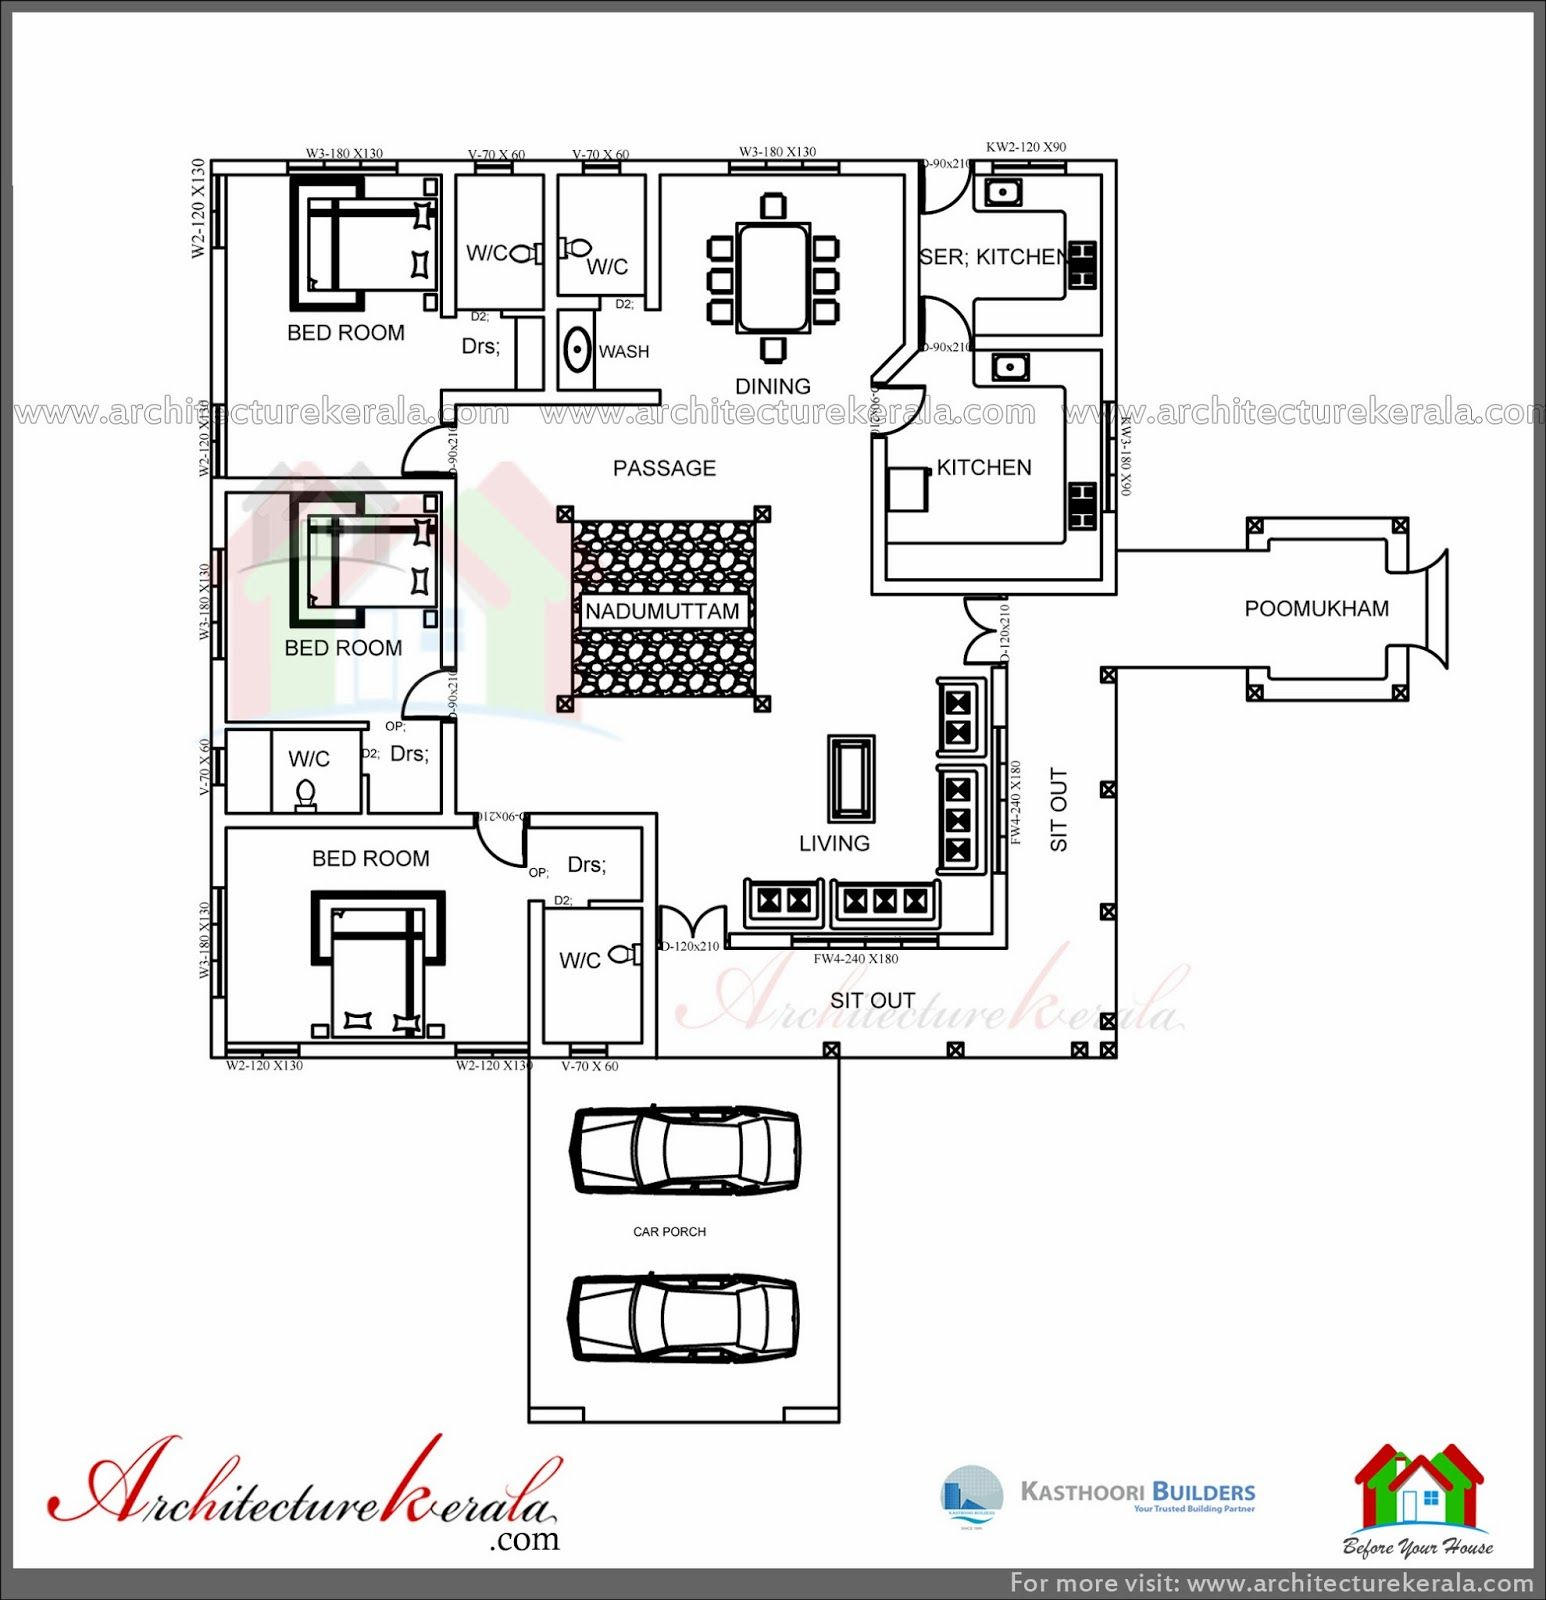 Kerala Model Home Plans: ARCHITECTURE KERALA: TRADITIONAL HOUSE PLAN WITH